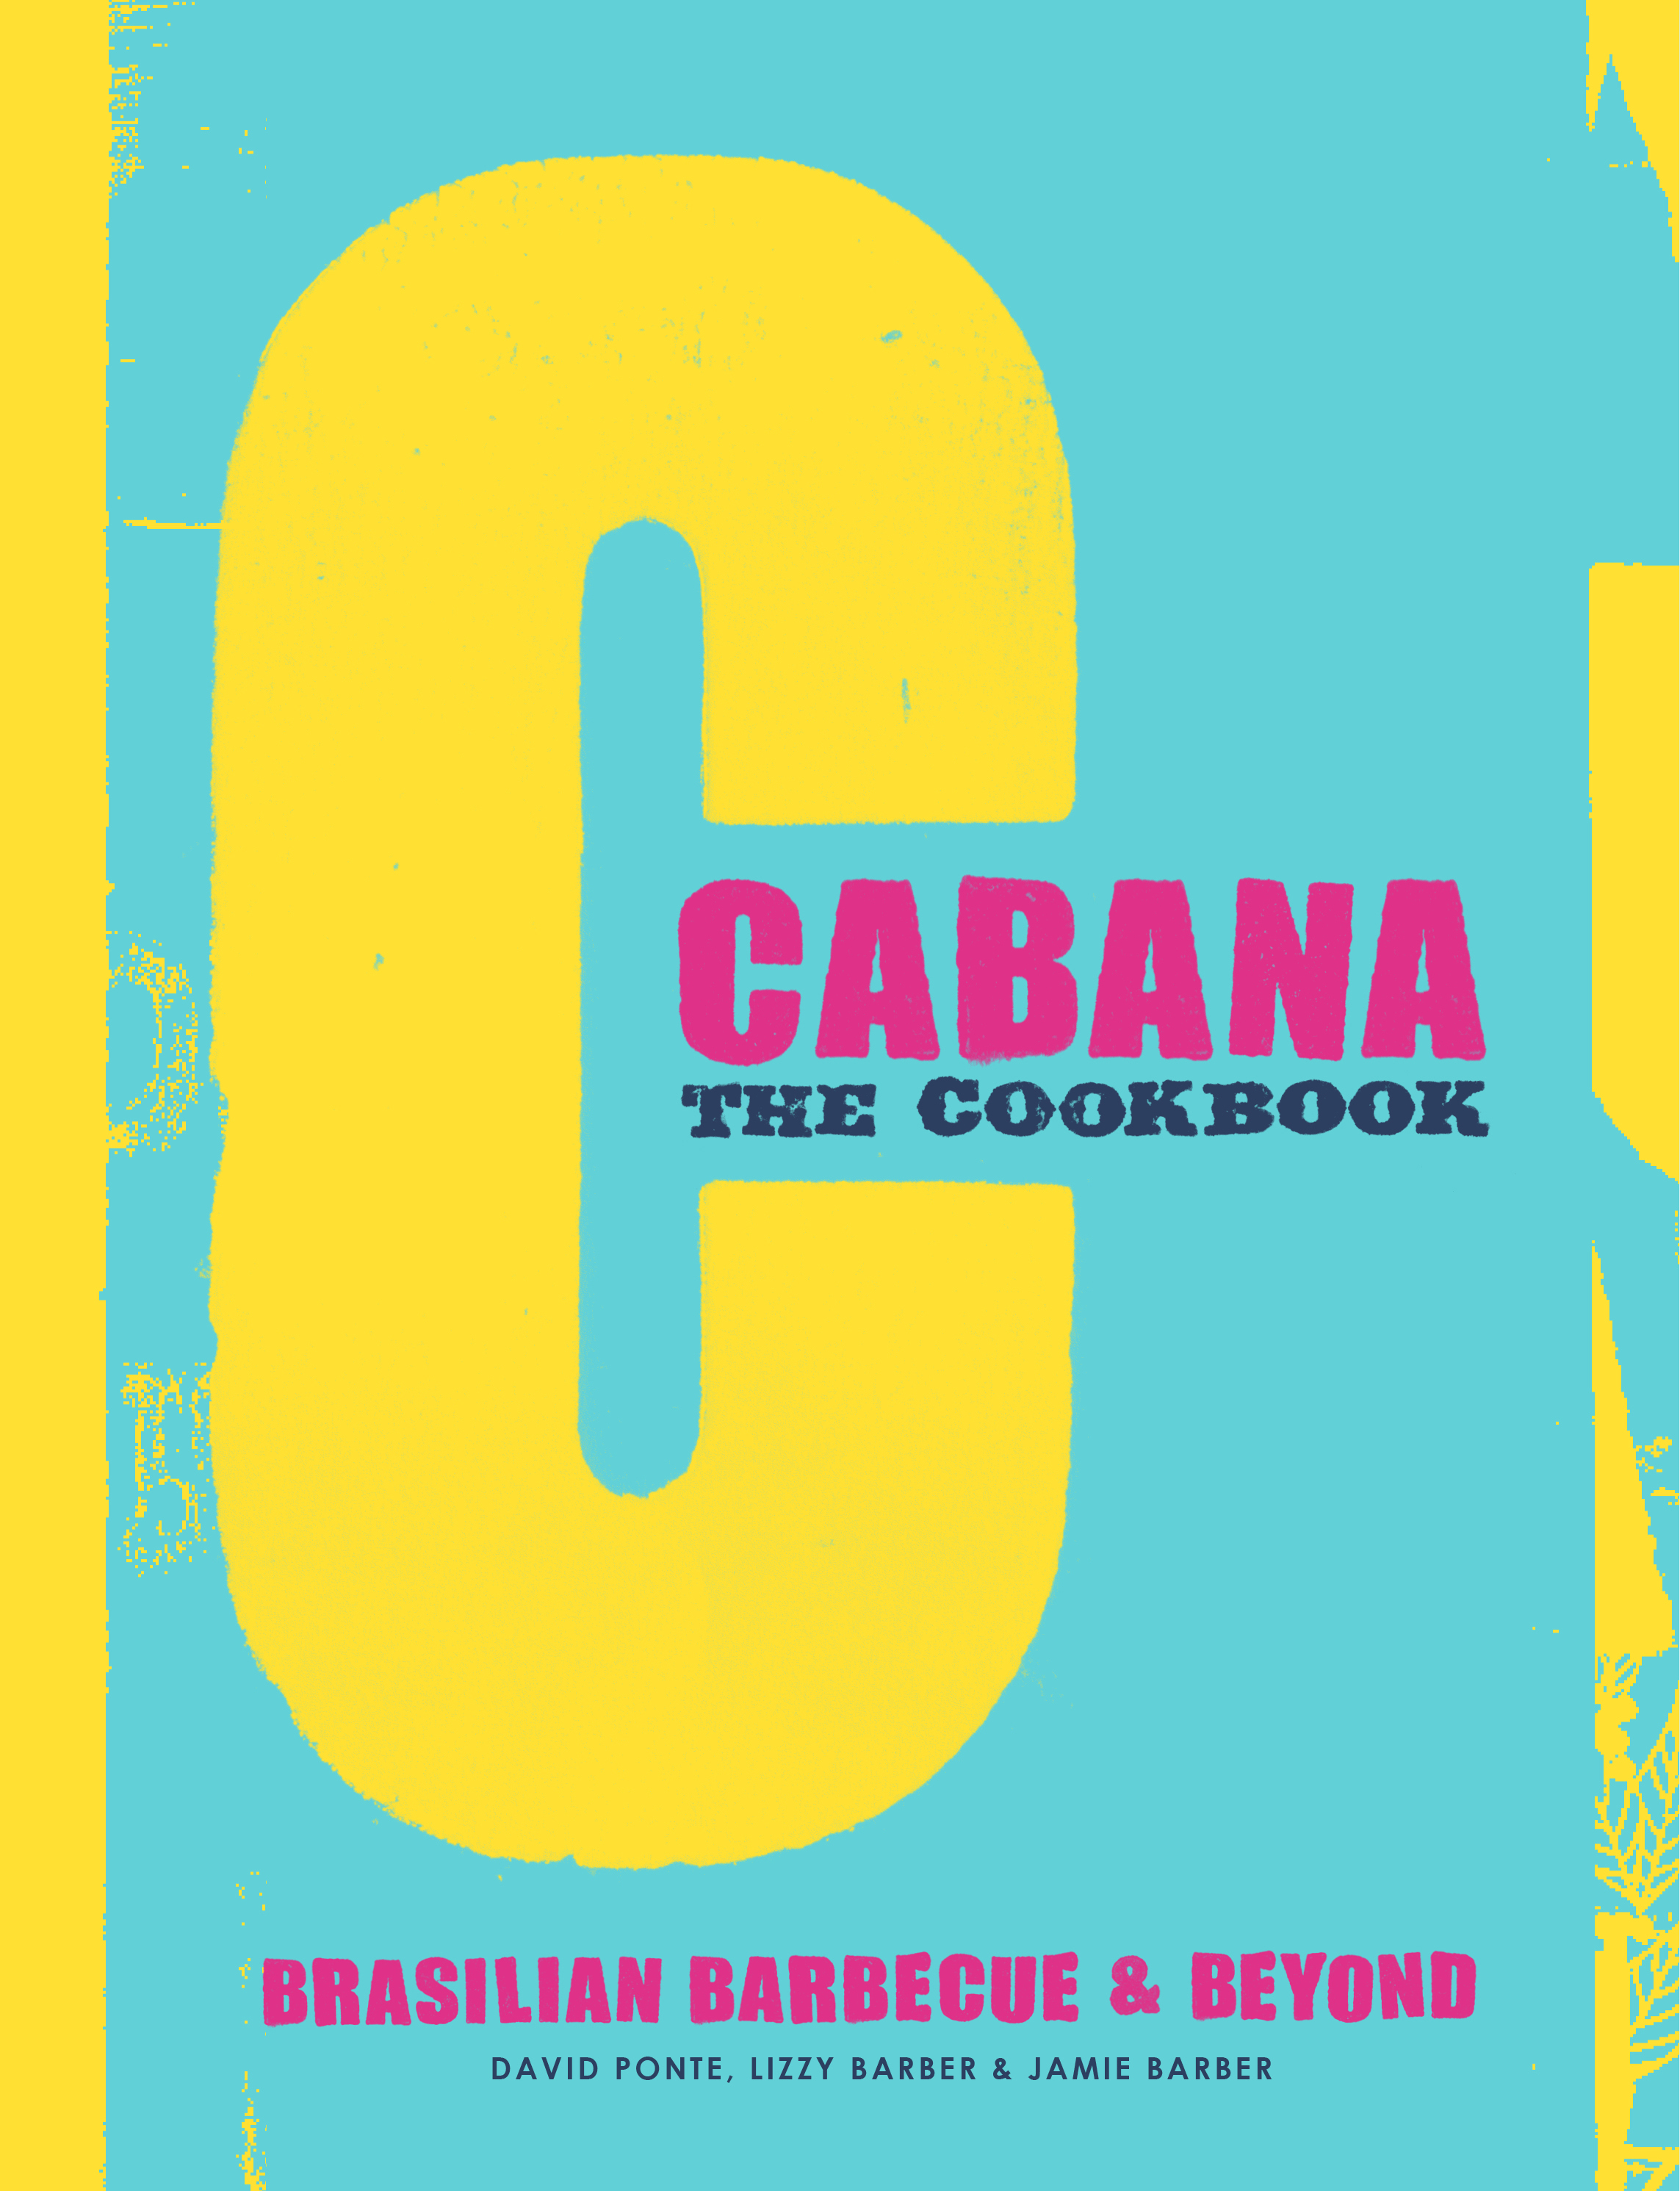 Cabana The Cookbook